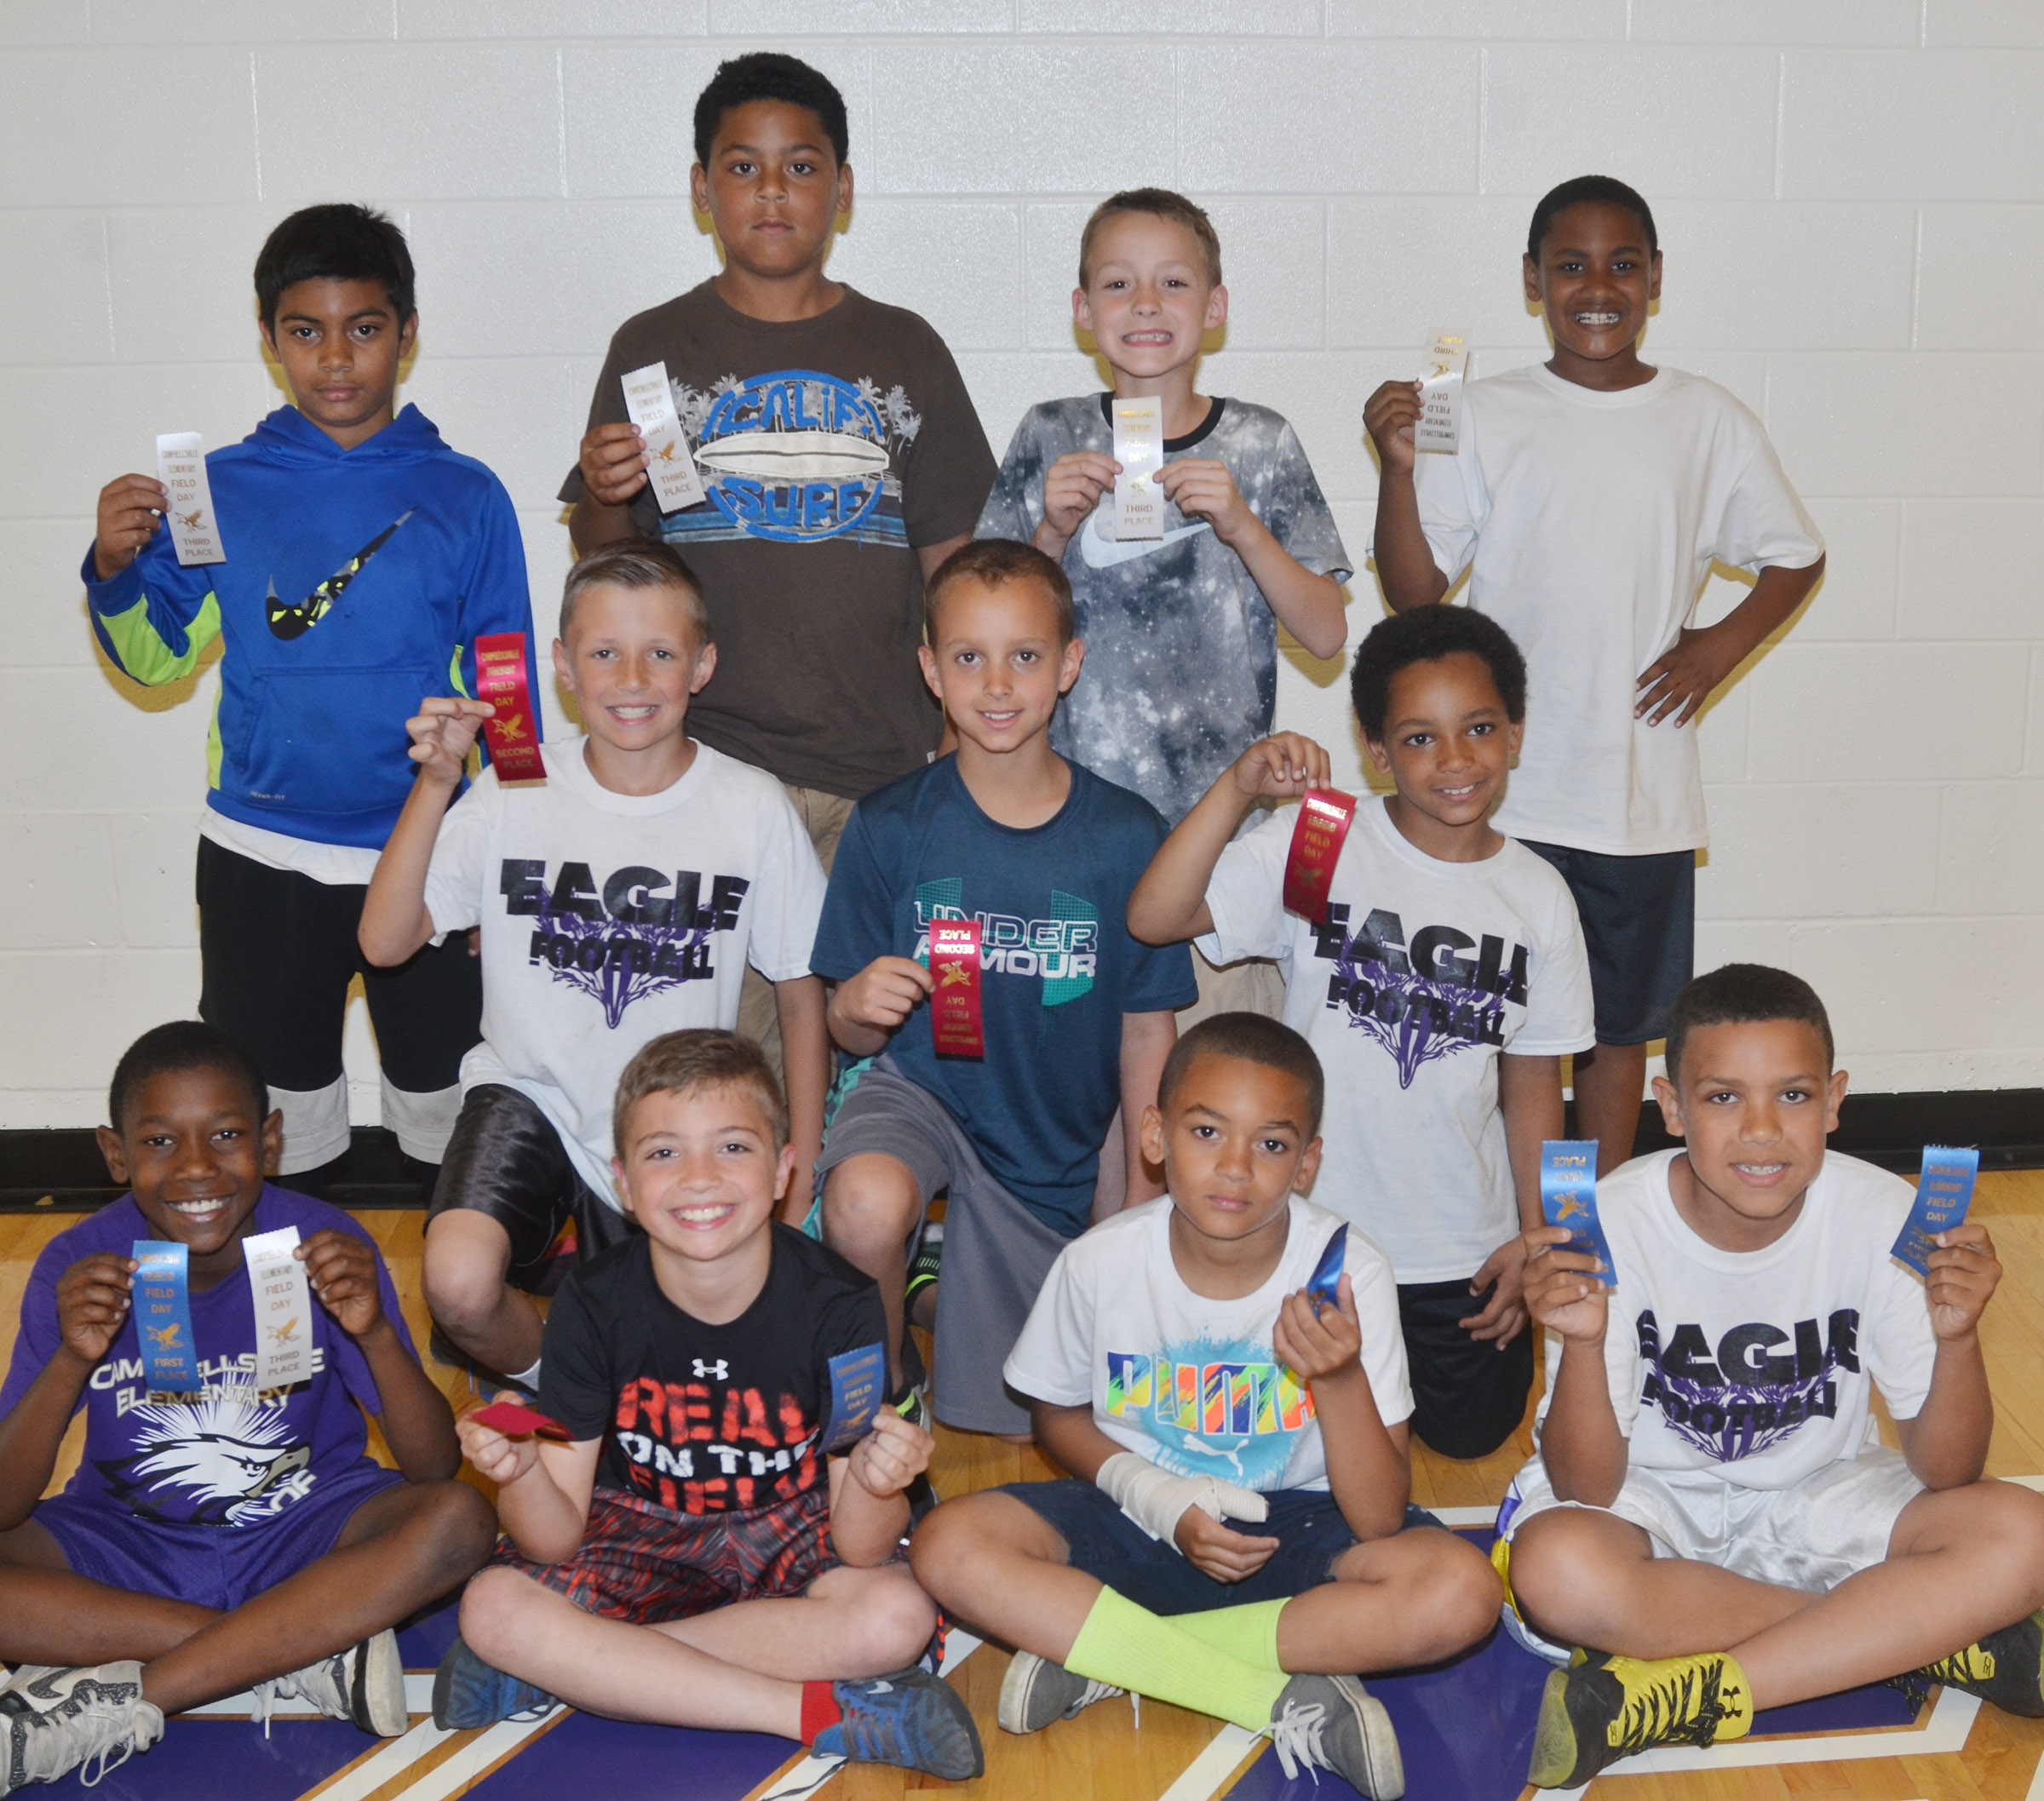 CES third-grade boys who were classroom winners in the 50-yard dash are, from left, front, Jaron Johnson, Carson Mills, Jaden Barbee and Christian Hart, first place winners. Second row, Cameron Taylor, Bradley Paris and Jalen Embry, second place winners. Back, LaDainien Smith, Bryson Groves, Caysen Tungate and Shaiden Calhoun, third place winners. Absent from the photo is Demetrious Dickens, who was a second place winner. Overall, Christian Hart was first, Carson Mills was second and Jaron Johnson was third.